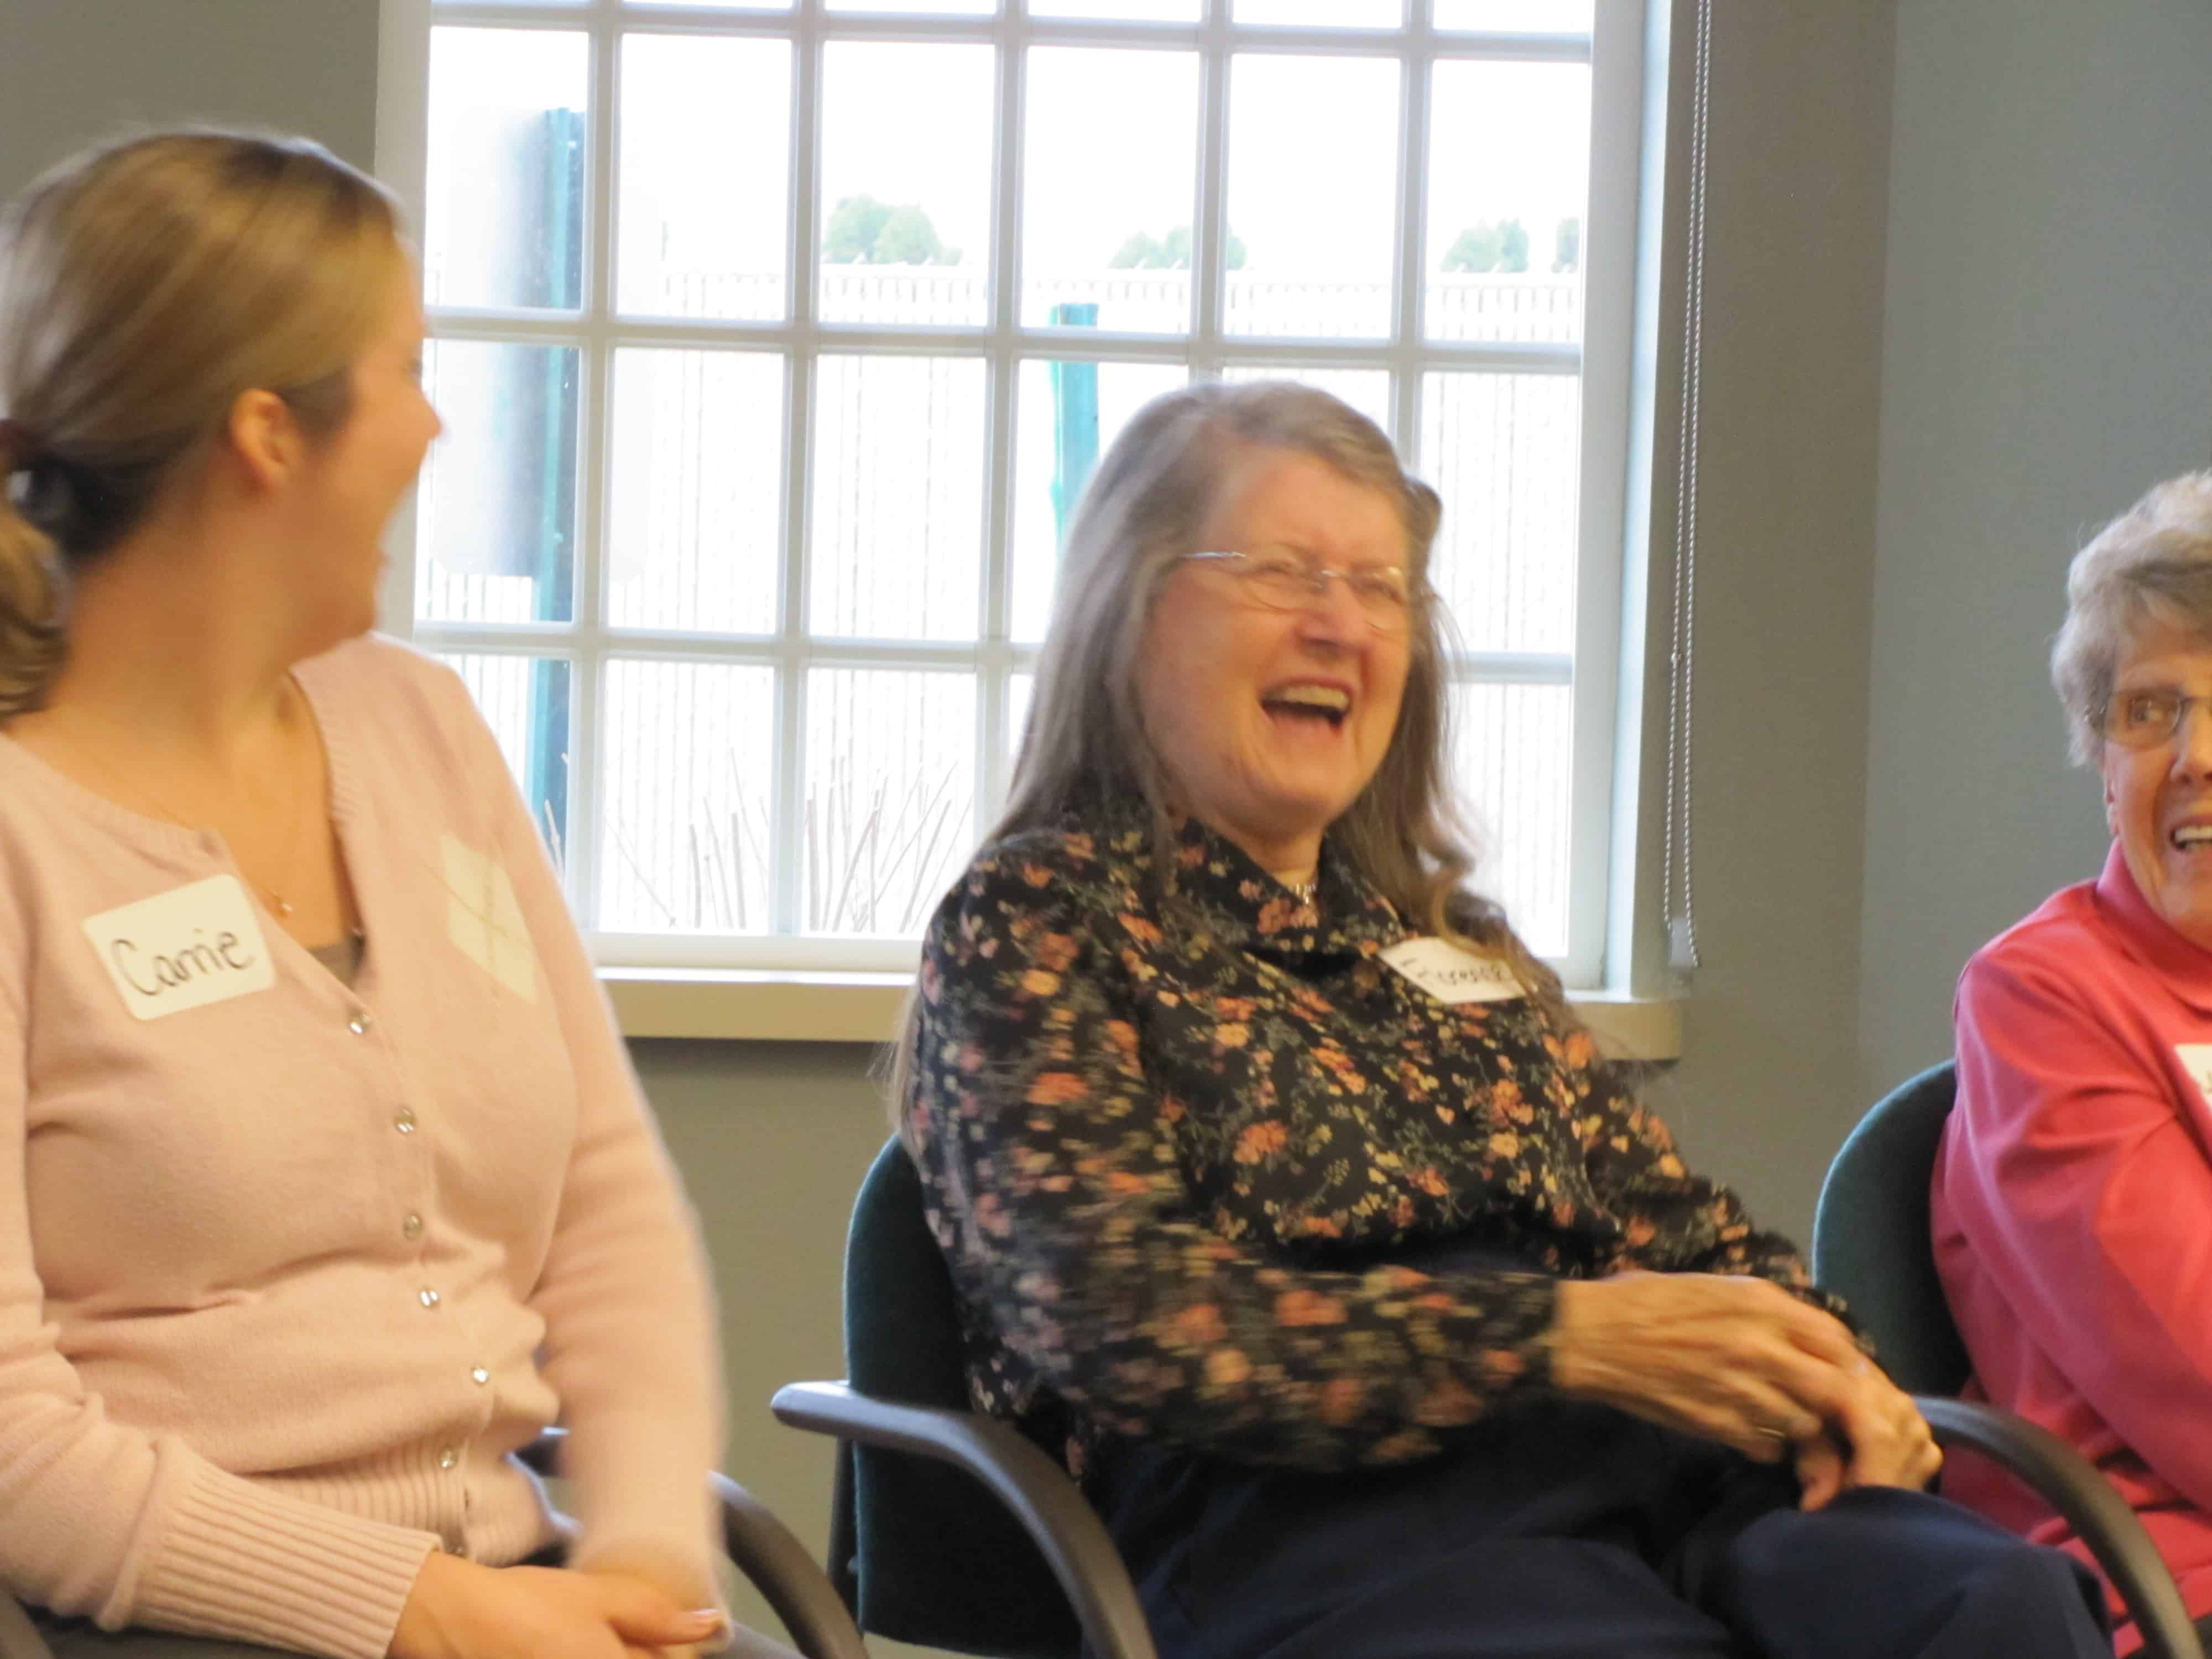 Lyrics and Laughter Life Enrichment Activity